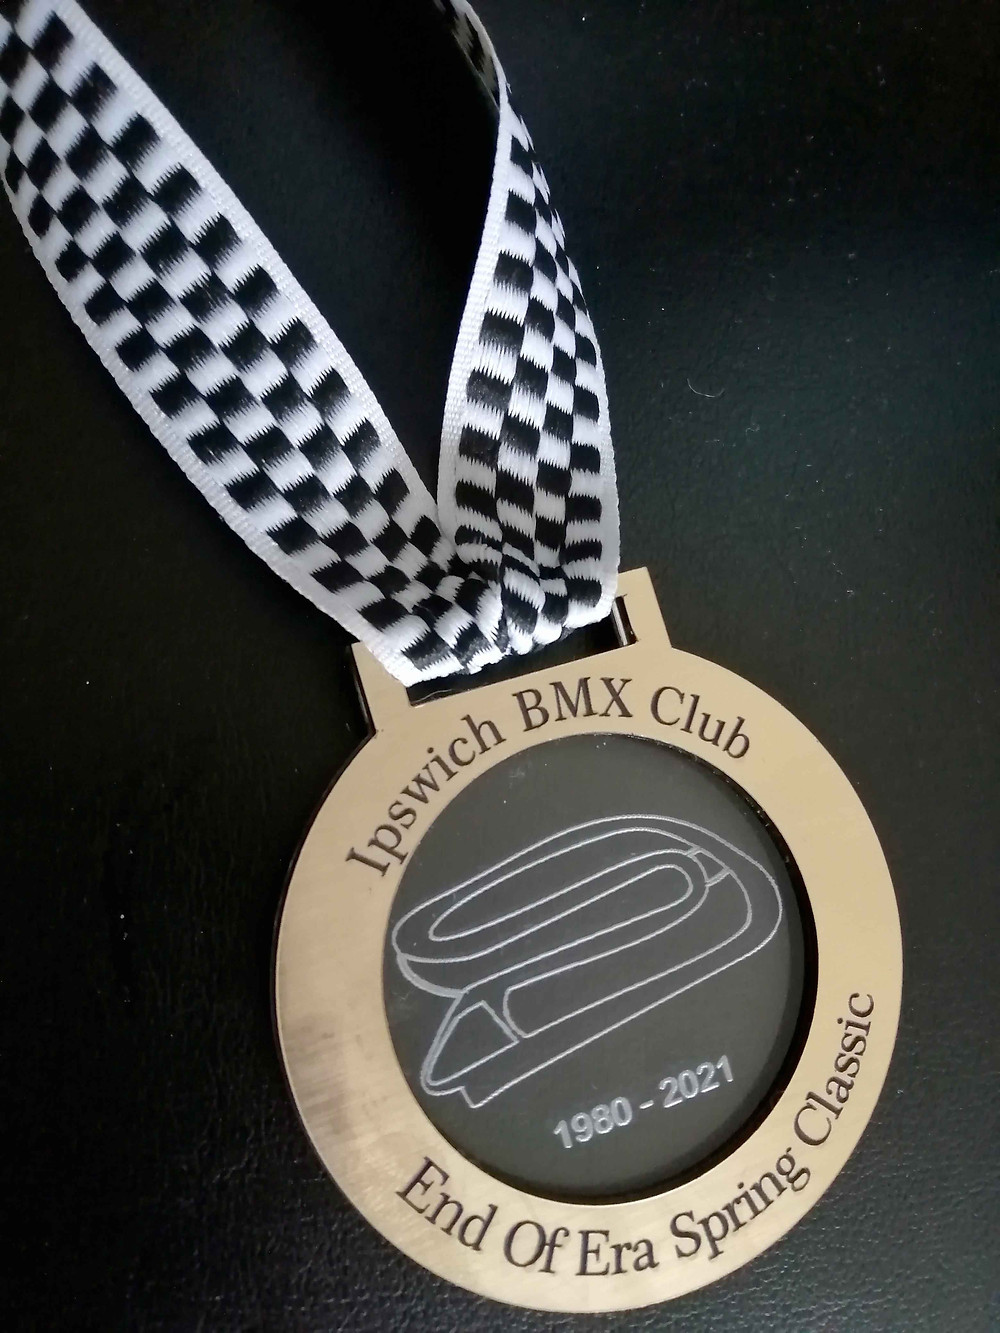 Medal with imagery of our existing track.